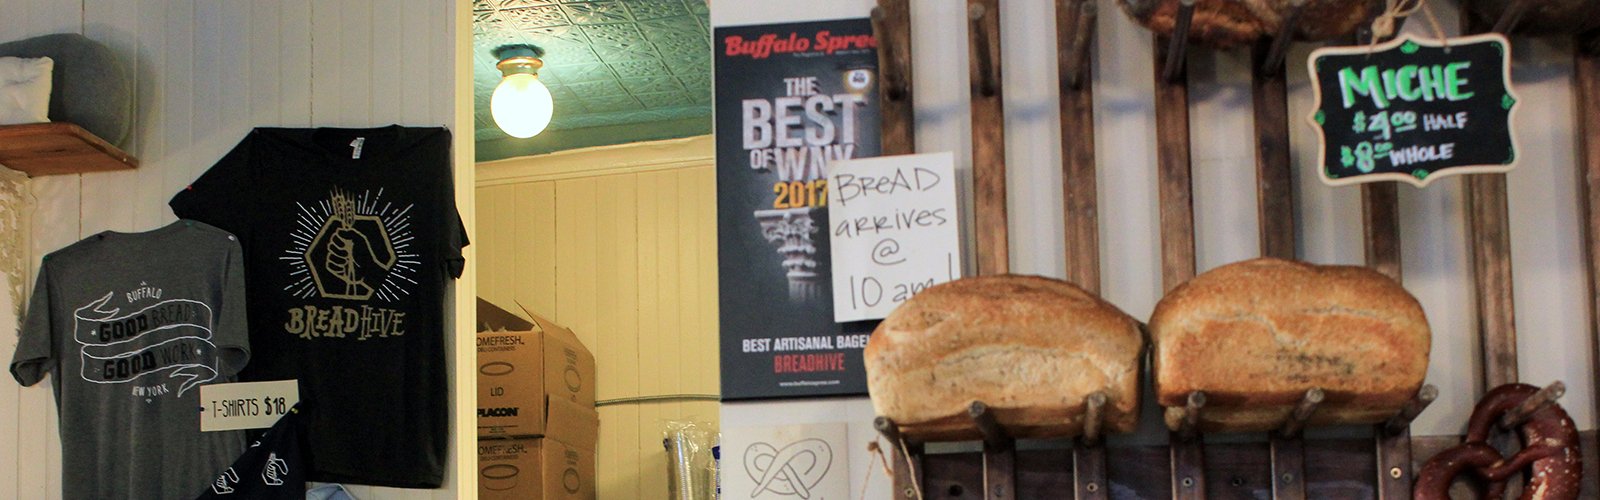 The BreadHive Bakery and Café is a staple of Buffalo's West Side.